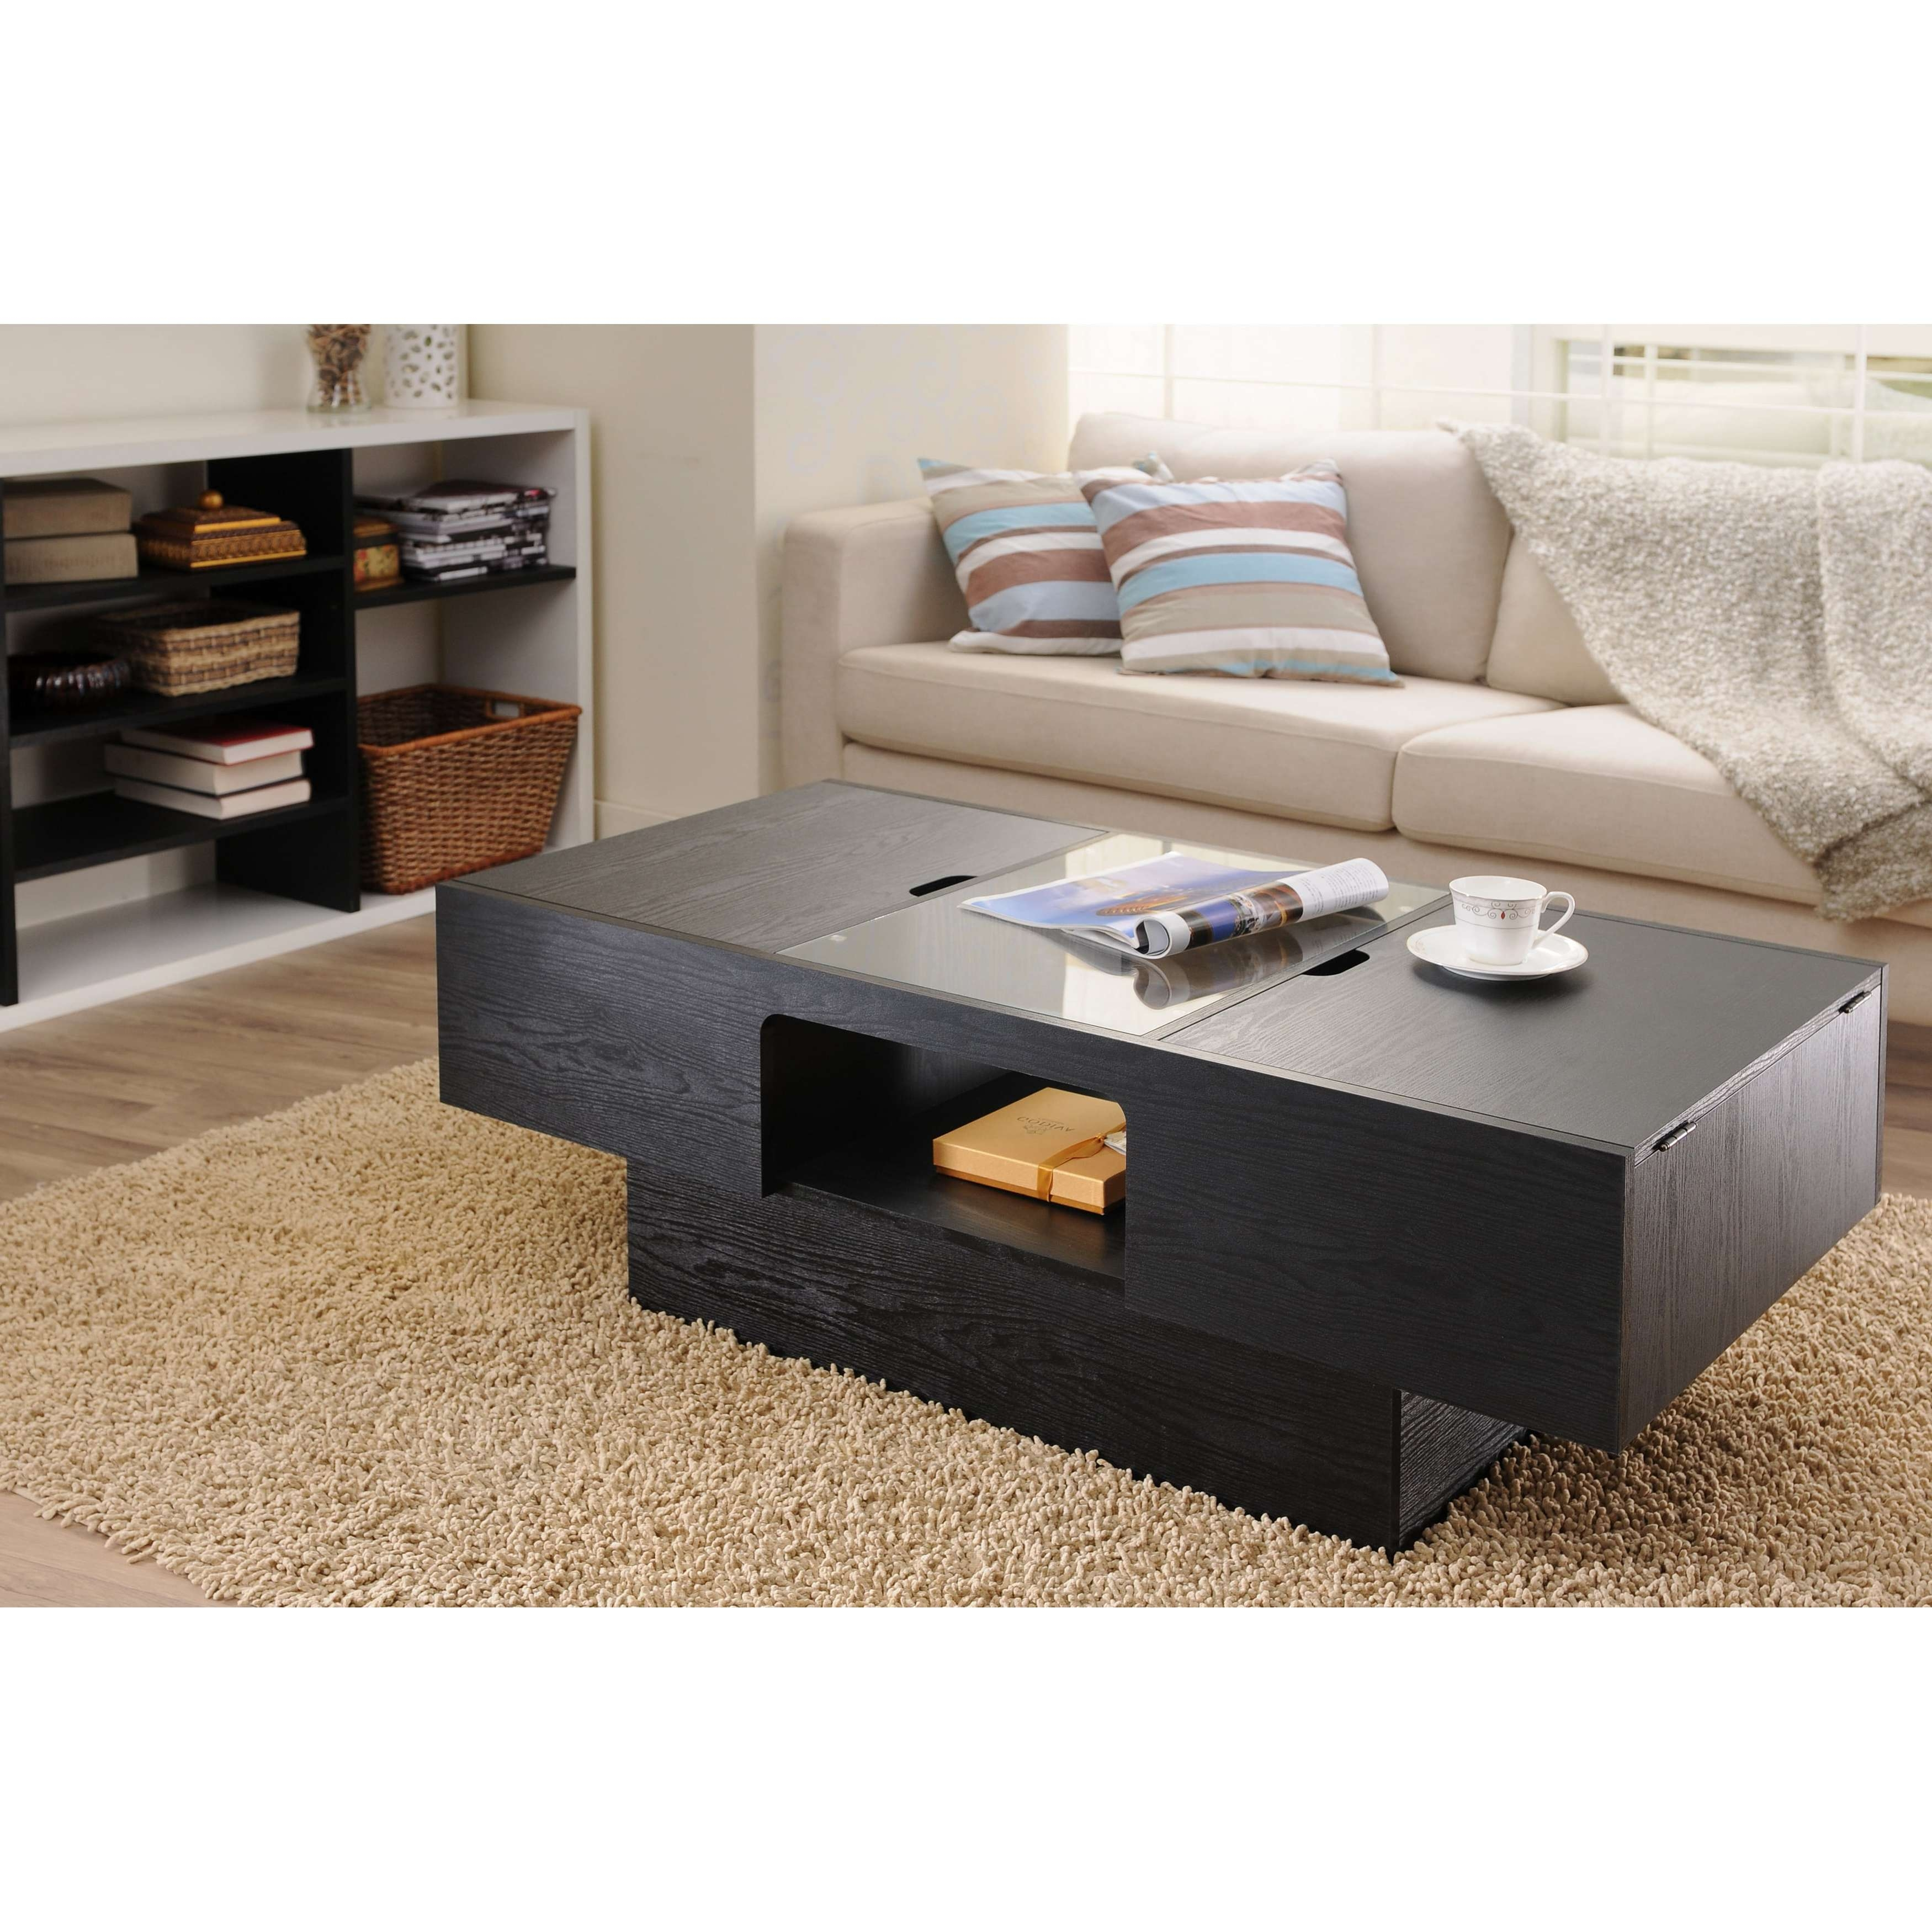 Widely Used Storage Coffee Tables In Furniture Of America Stevie Black Finish Hidden Storage Coffee (View 19 of 20)